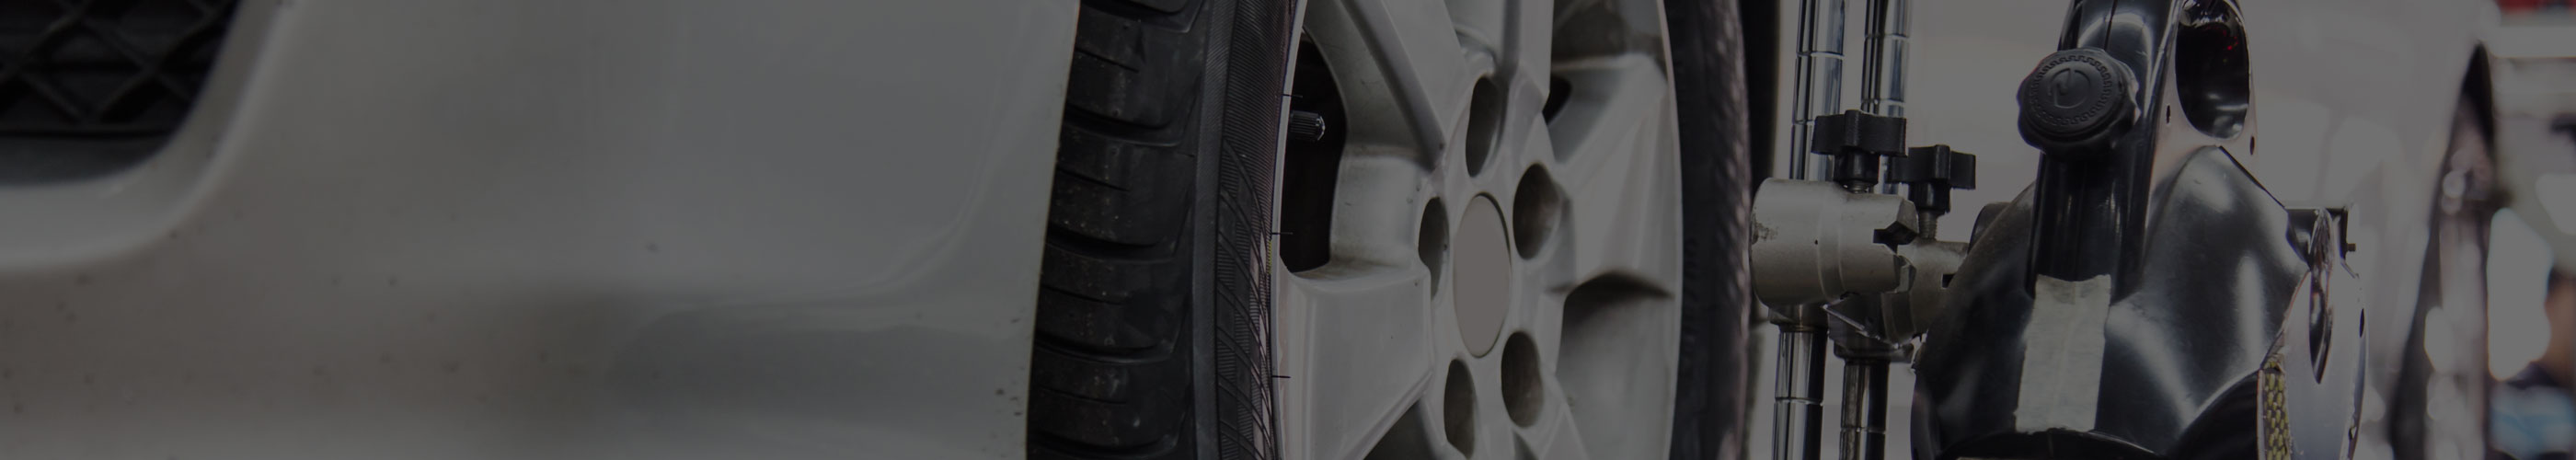 Wheel Alignment Cleveland Heights OH   Cleveland Heights